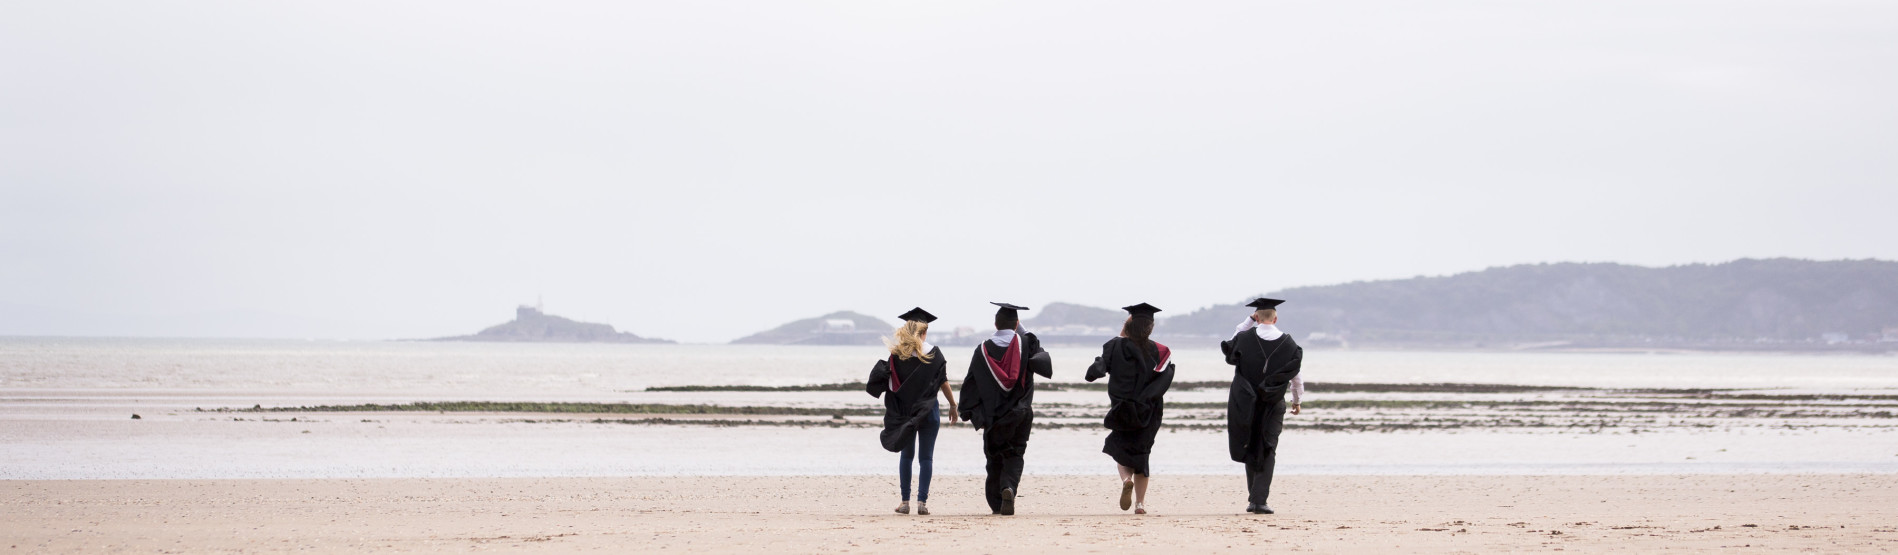 students at graduation walking across a beach